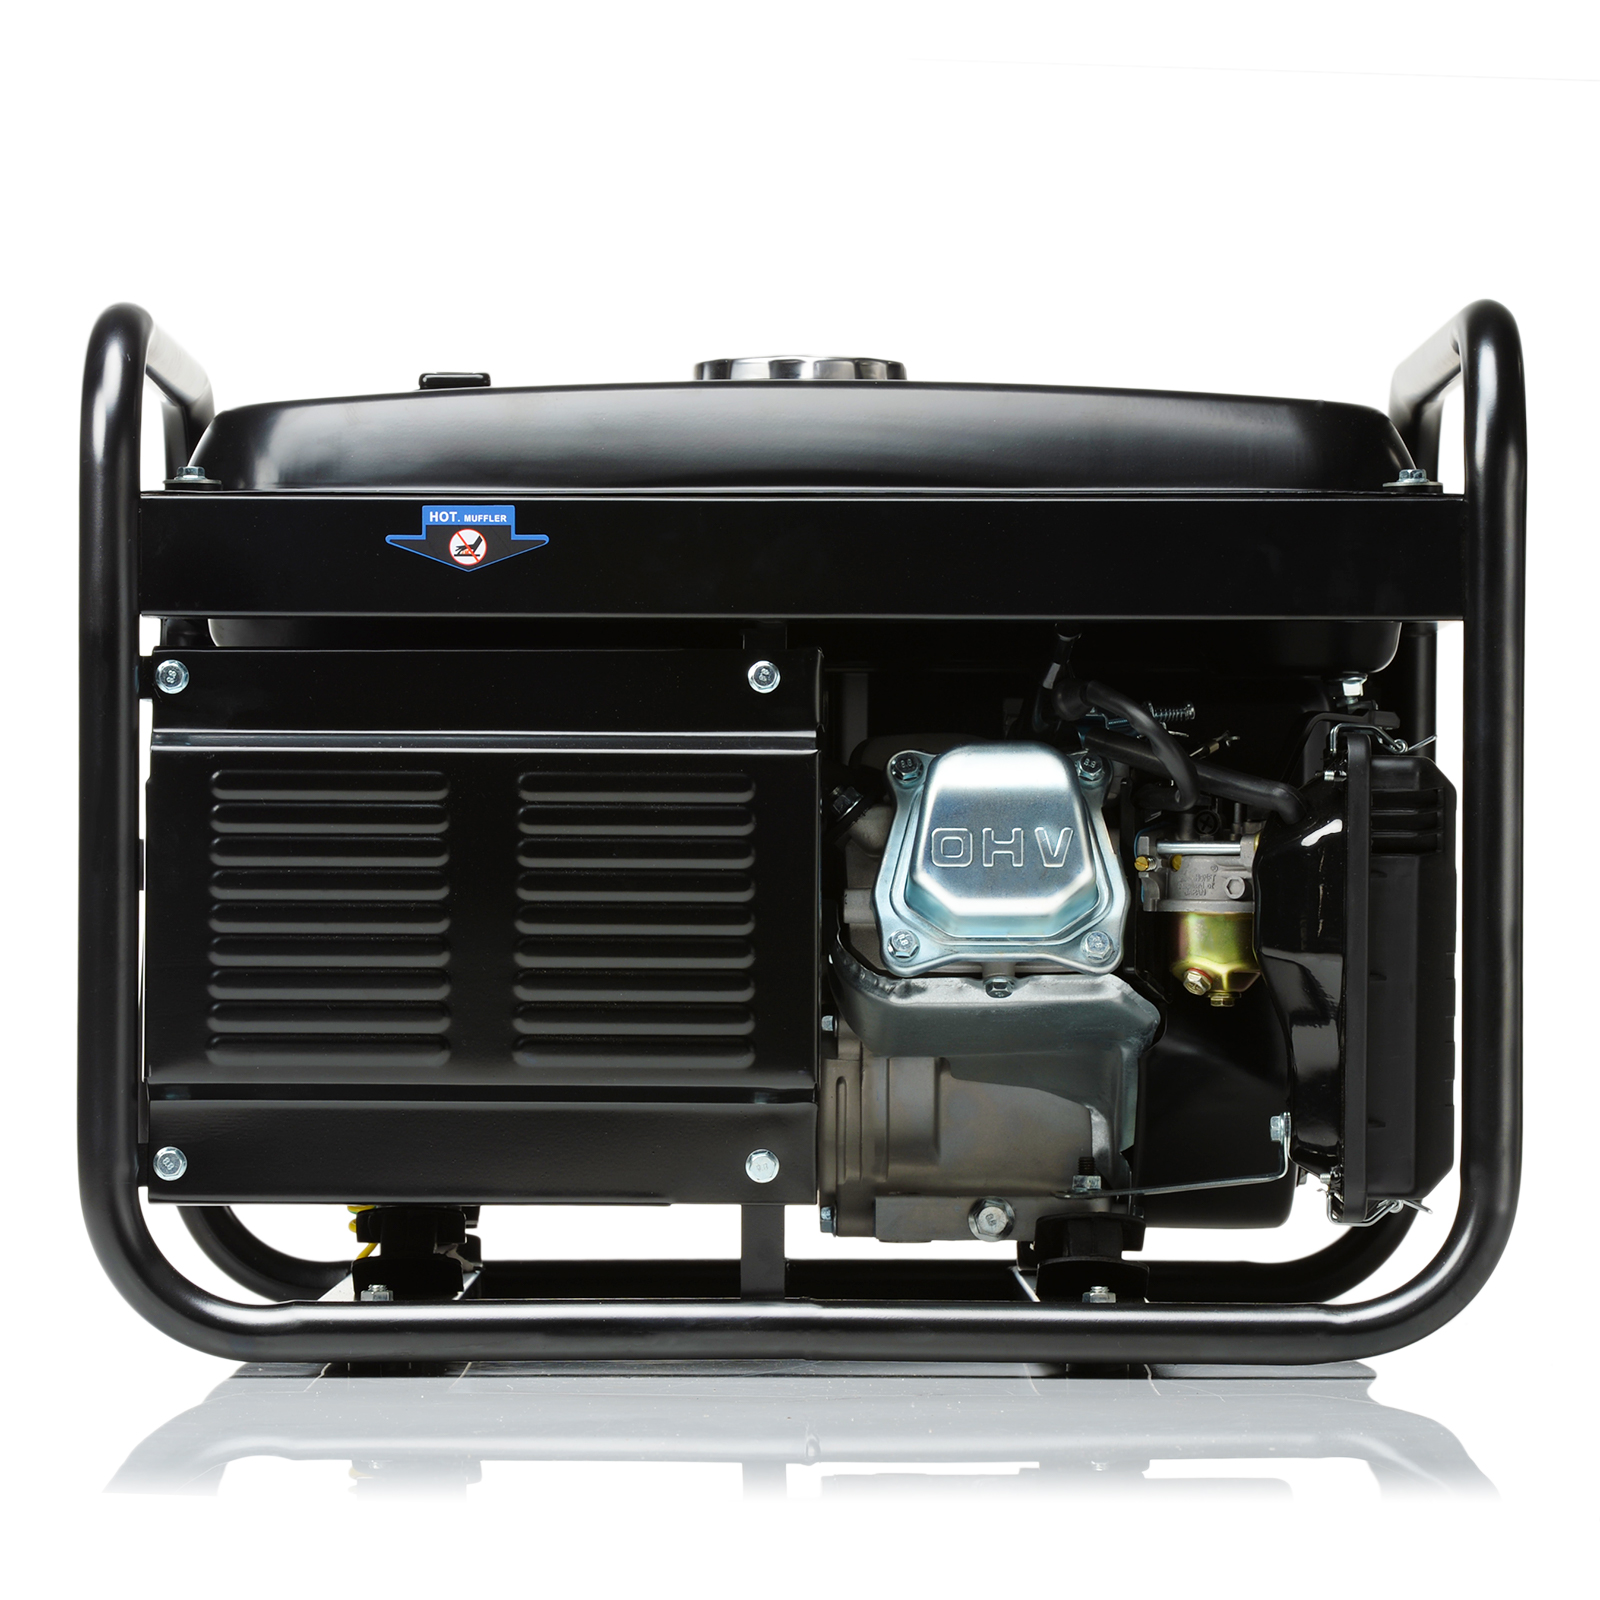 SGS 2.8 kVA Portable Petrol Generator With Oil & Flylead Ian Welder Generator Wiring Diagram on